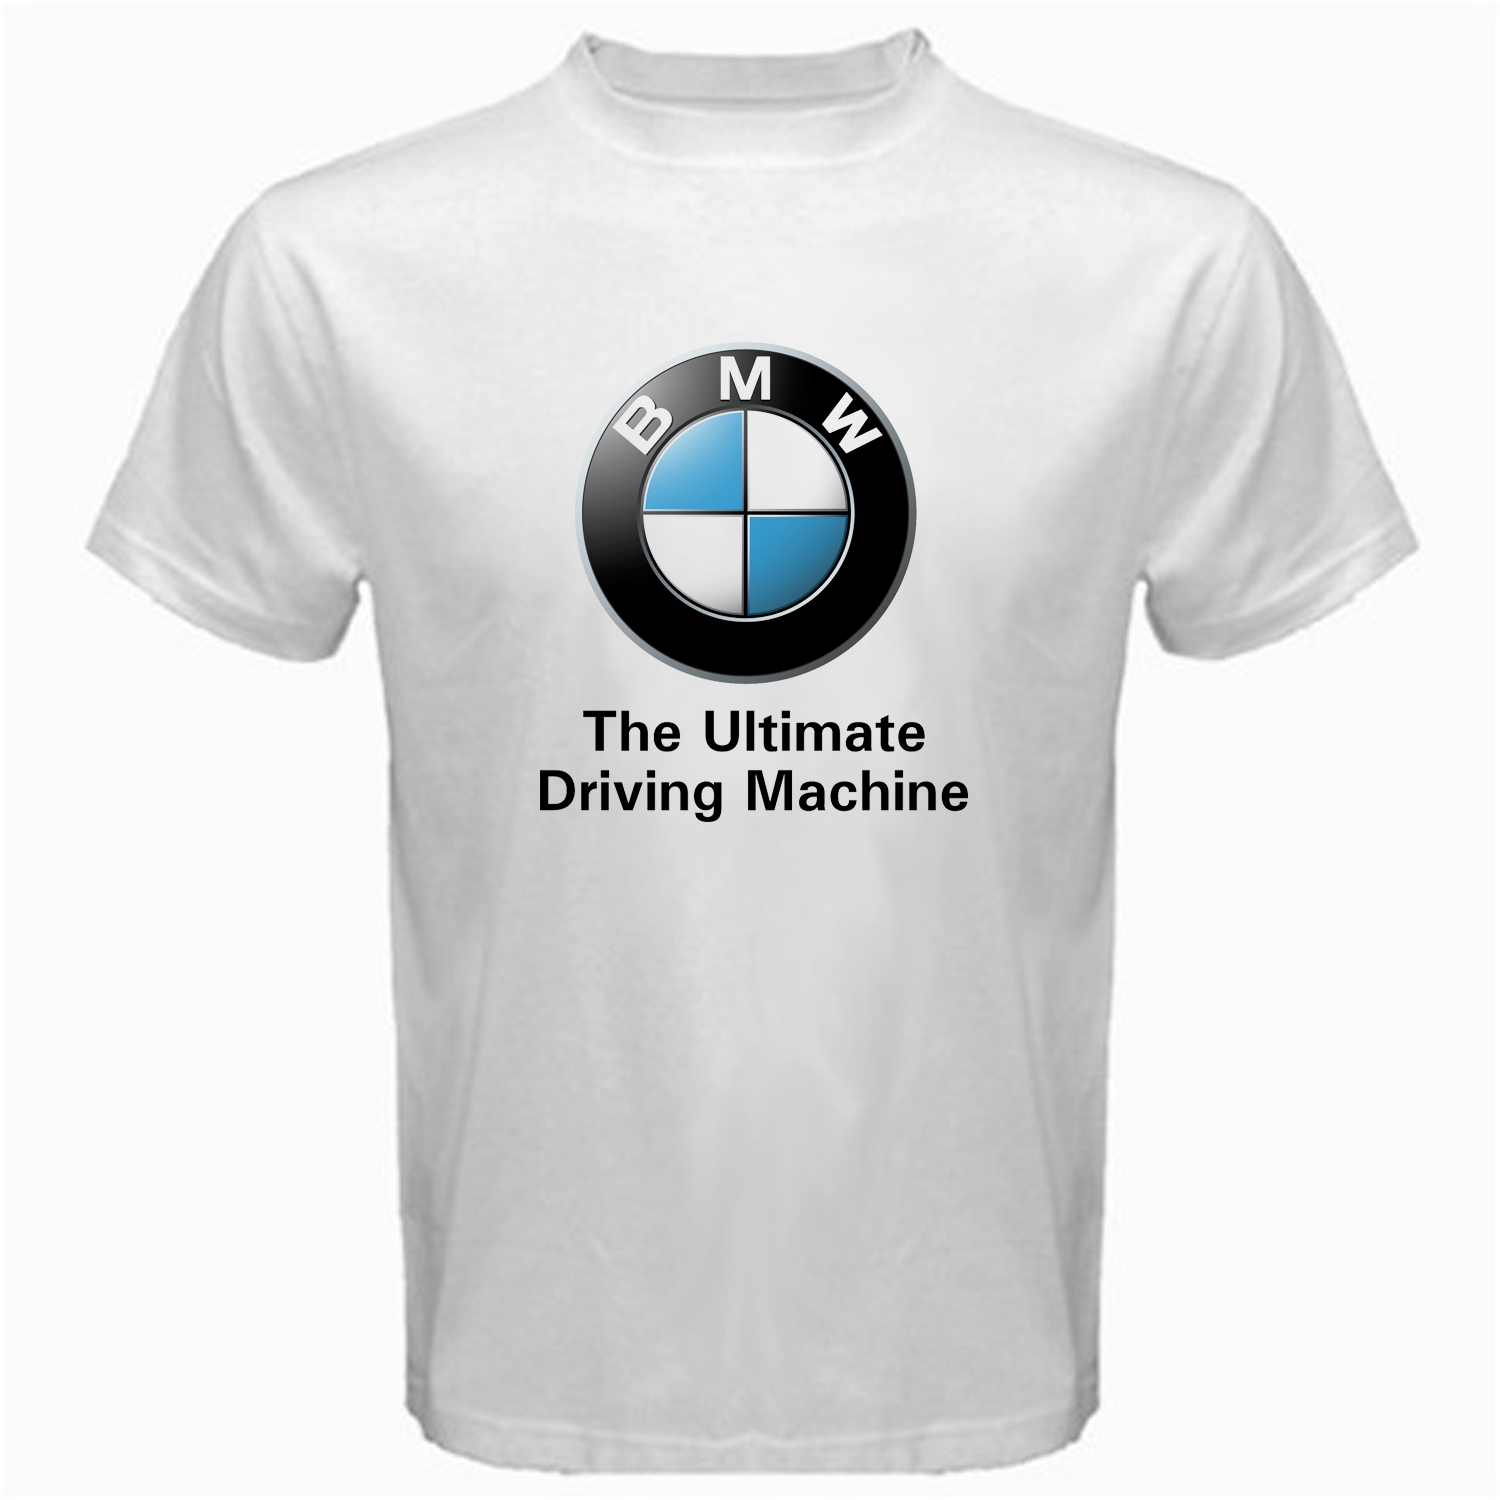 extraordinary bmw t shirt aratorn sport cars. Black Bedroom Furniture Sets. Home Design Ideas